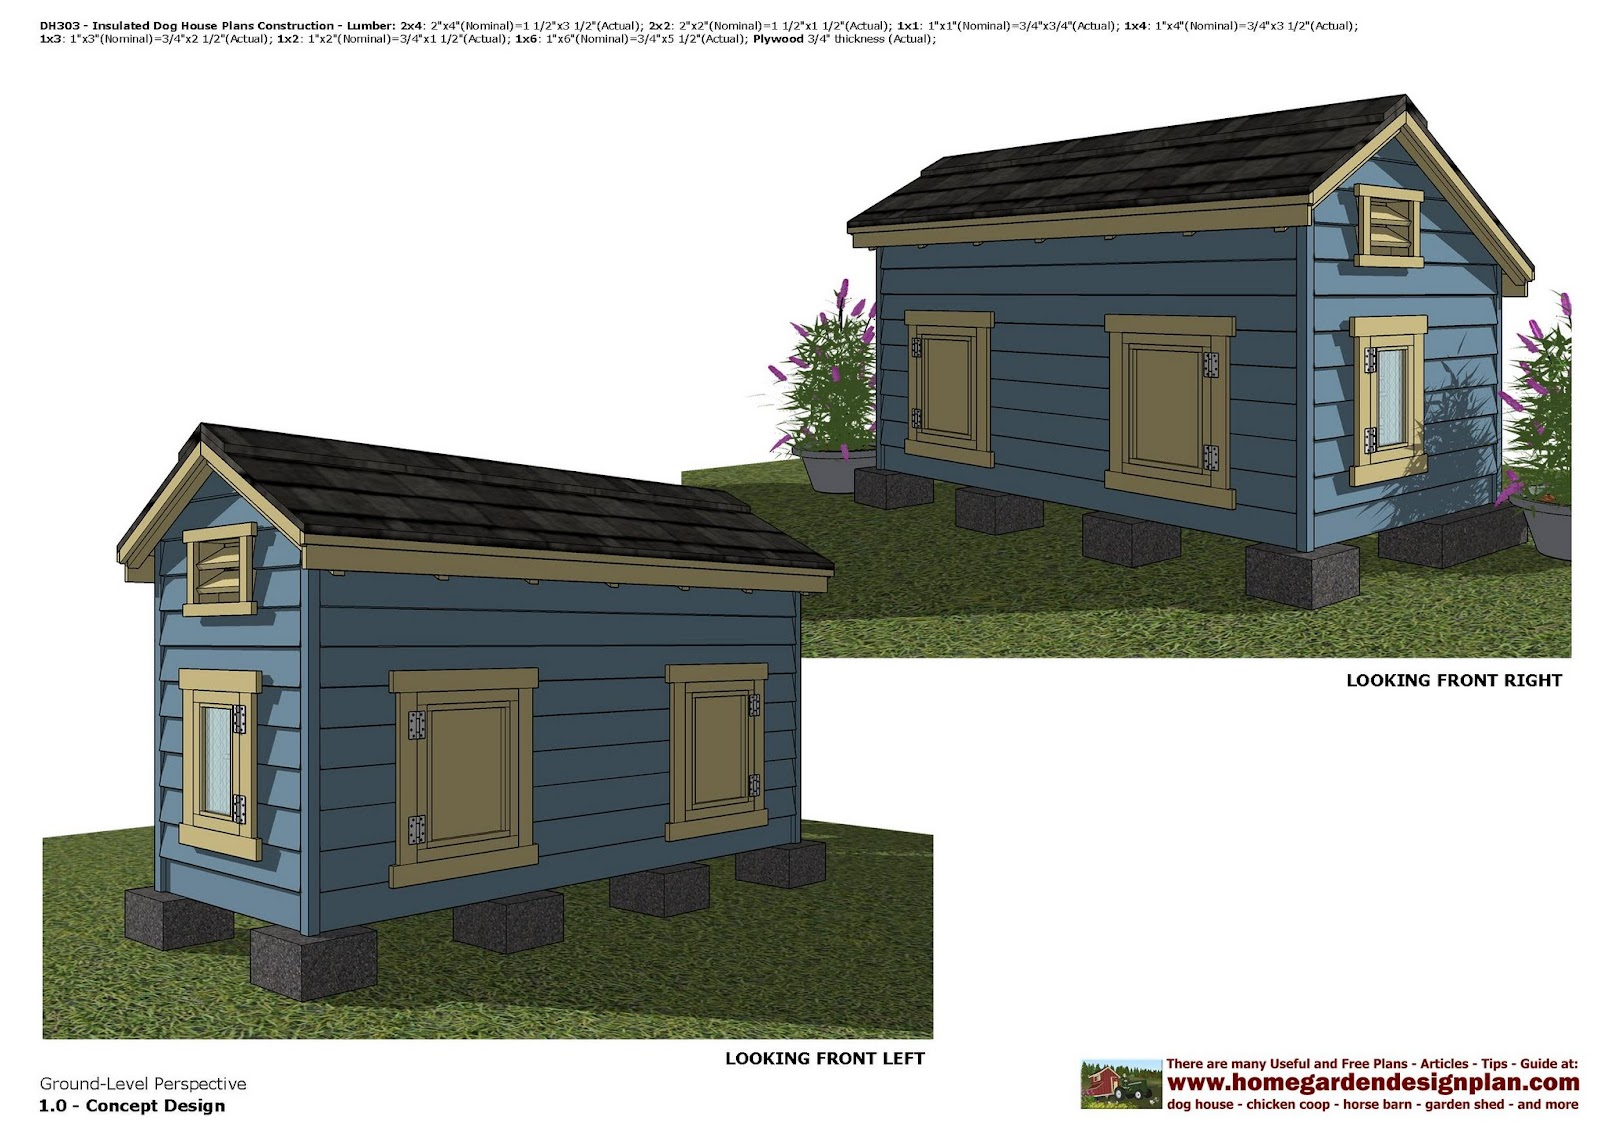 home garden plans DH303 Insulated Dog House Plans Dog House